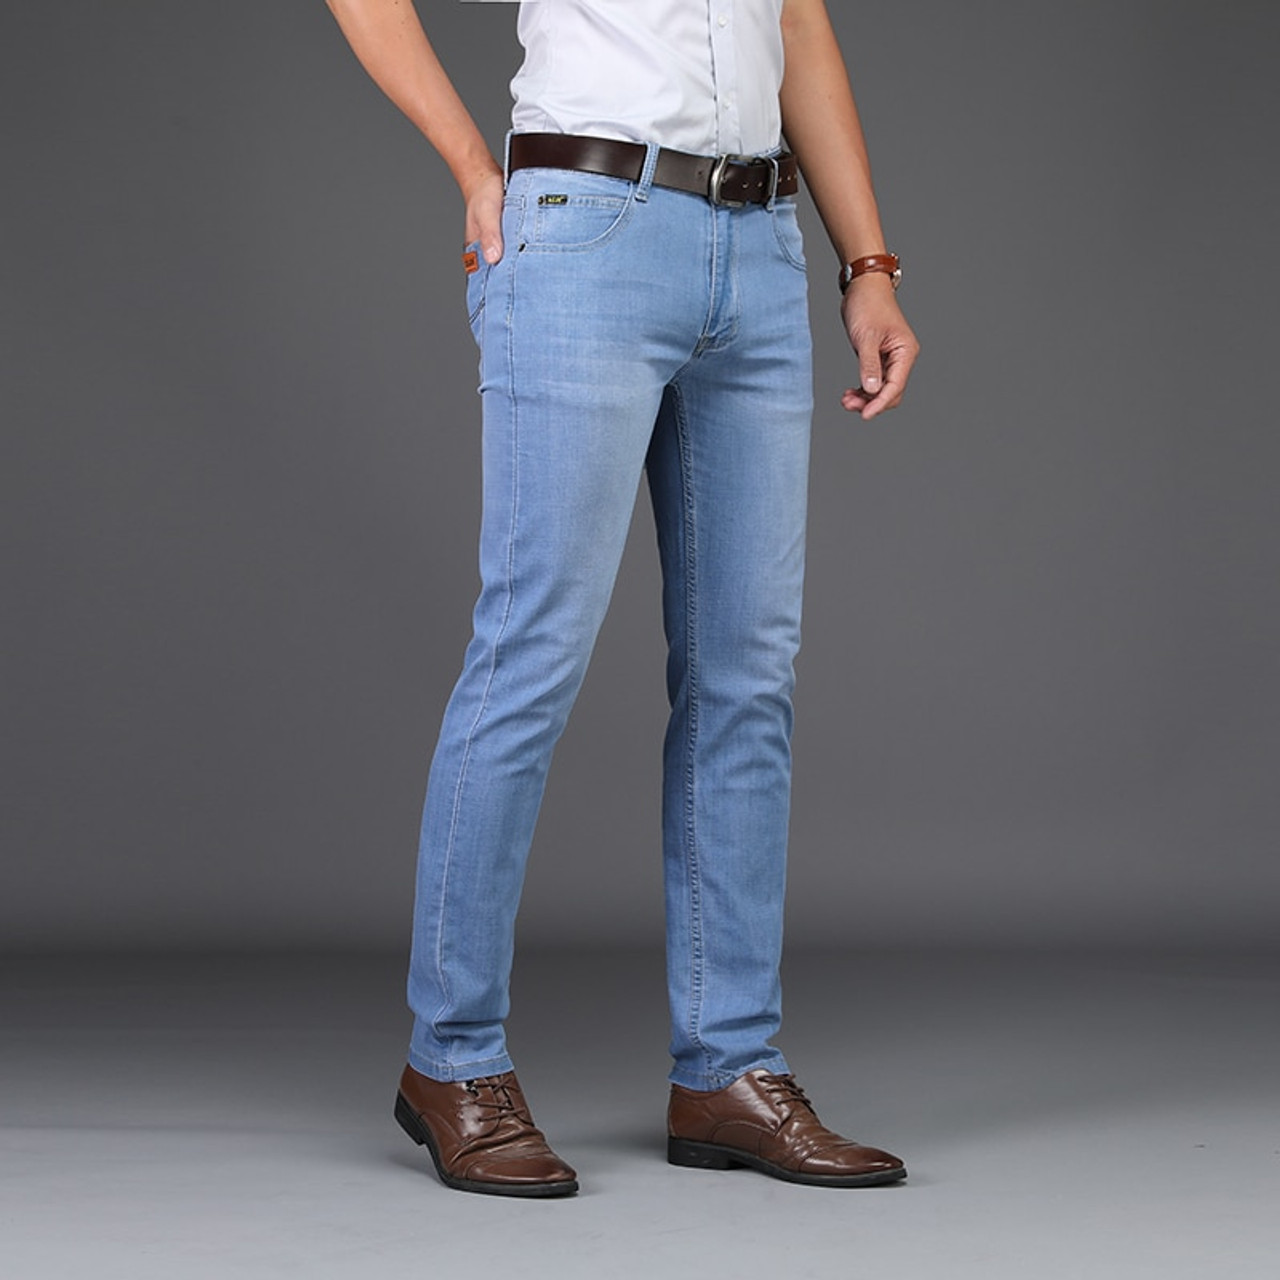 Sulee Brand Men Spring Summer Jeans Denim Mens Jeans Slim Fit Plus Size to  40 Big and Tall Men Pants Thin Dress jeans - OnshopDeals.Com